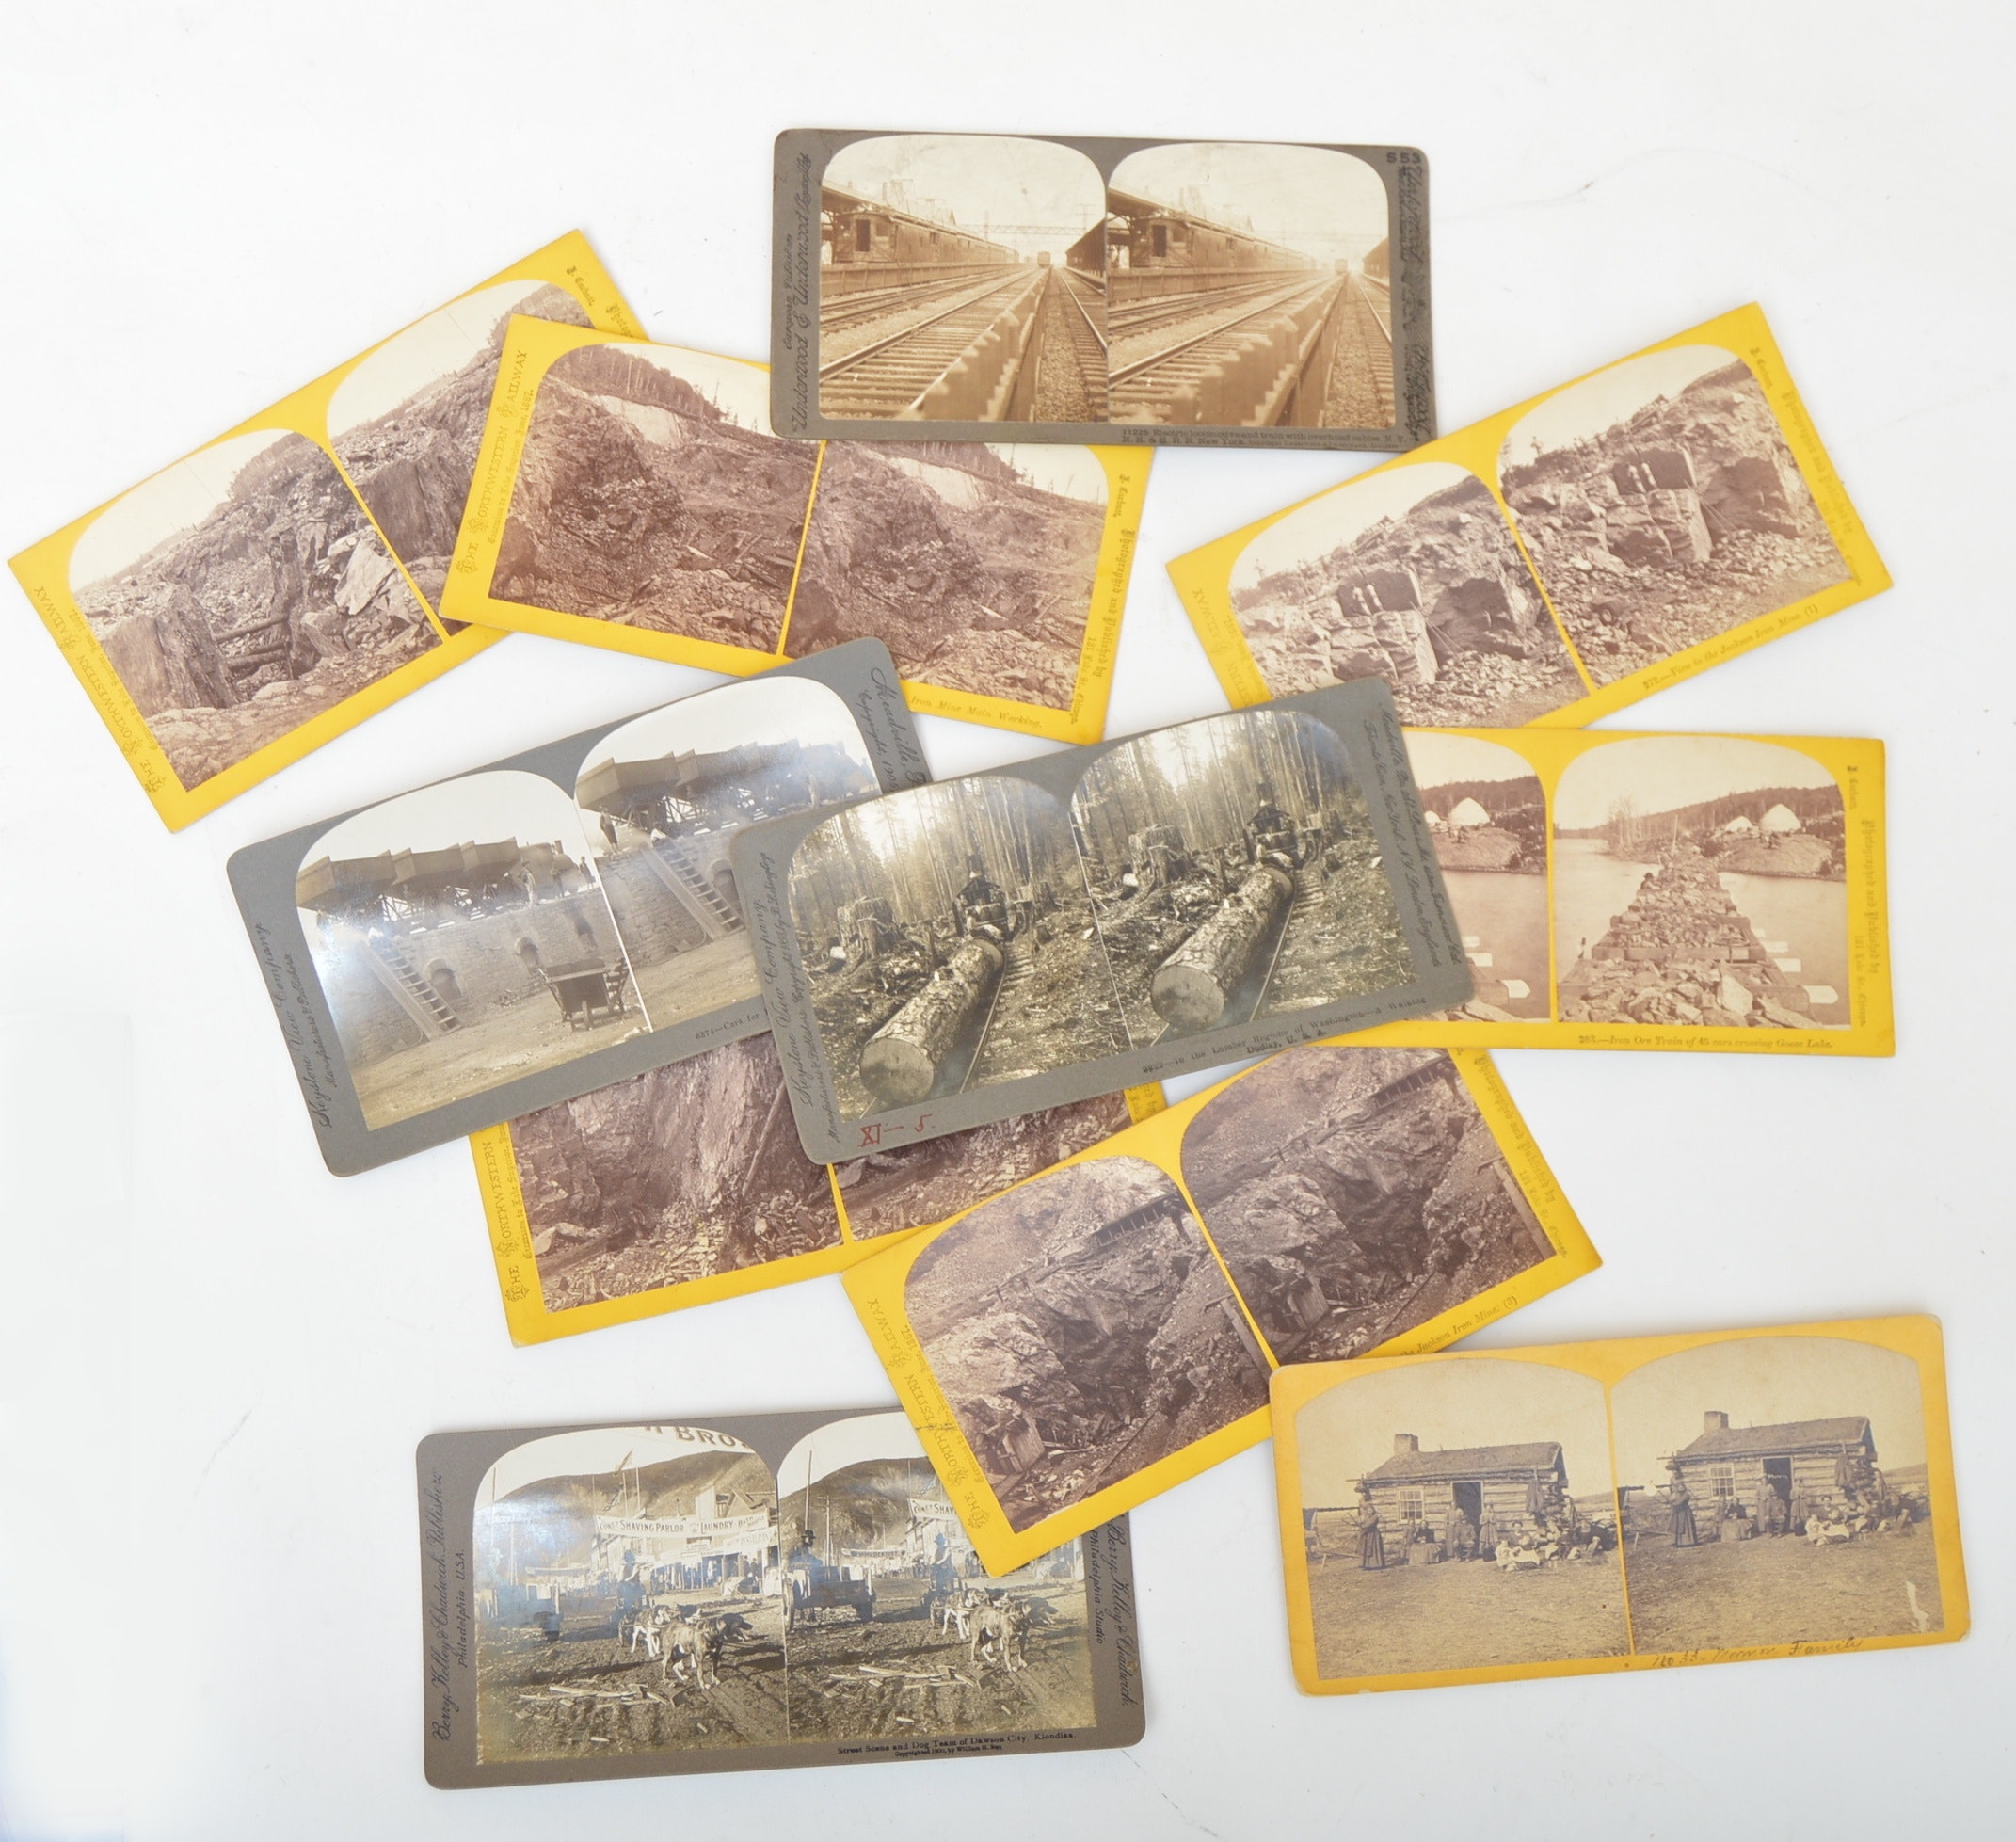 Vintage Stereoscopic Cards with Gold Rush, Pioneer, Railway